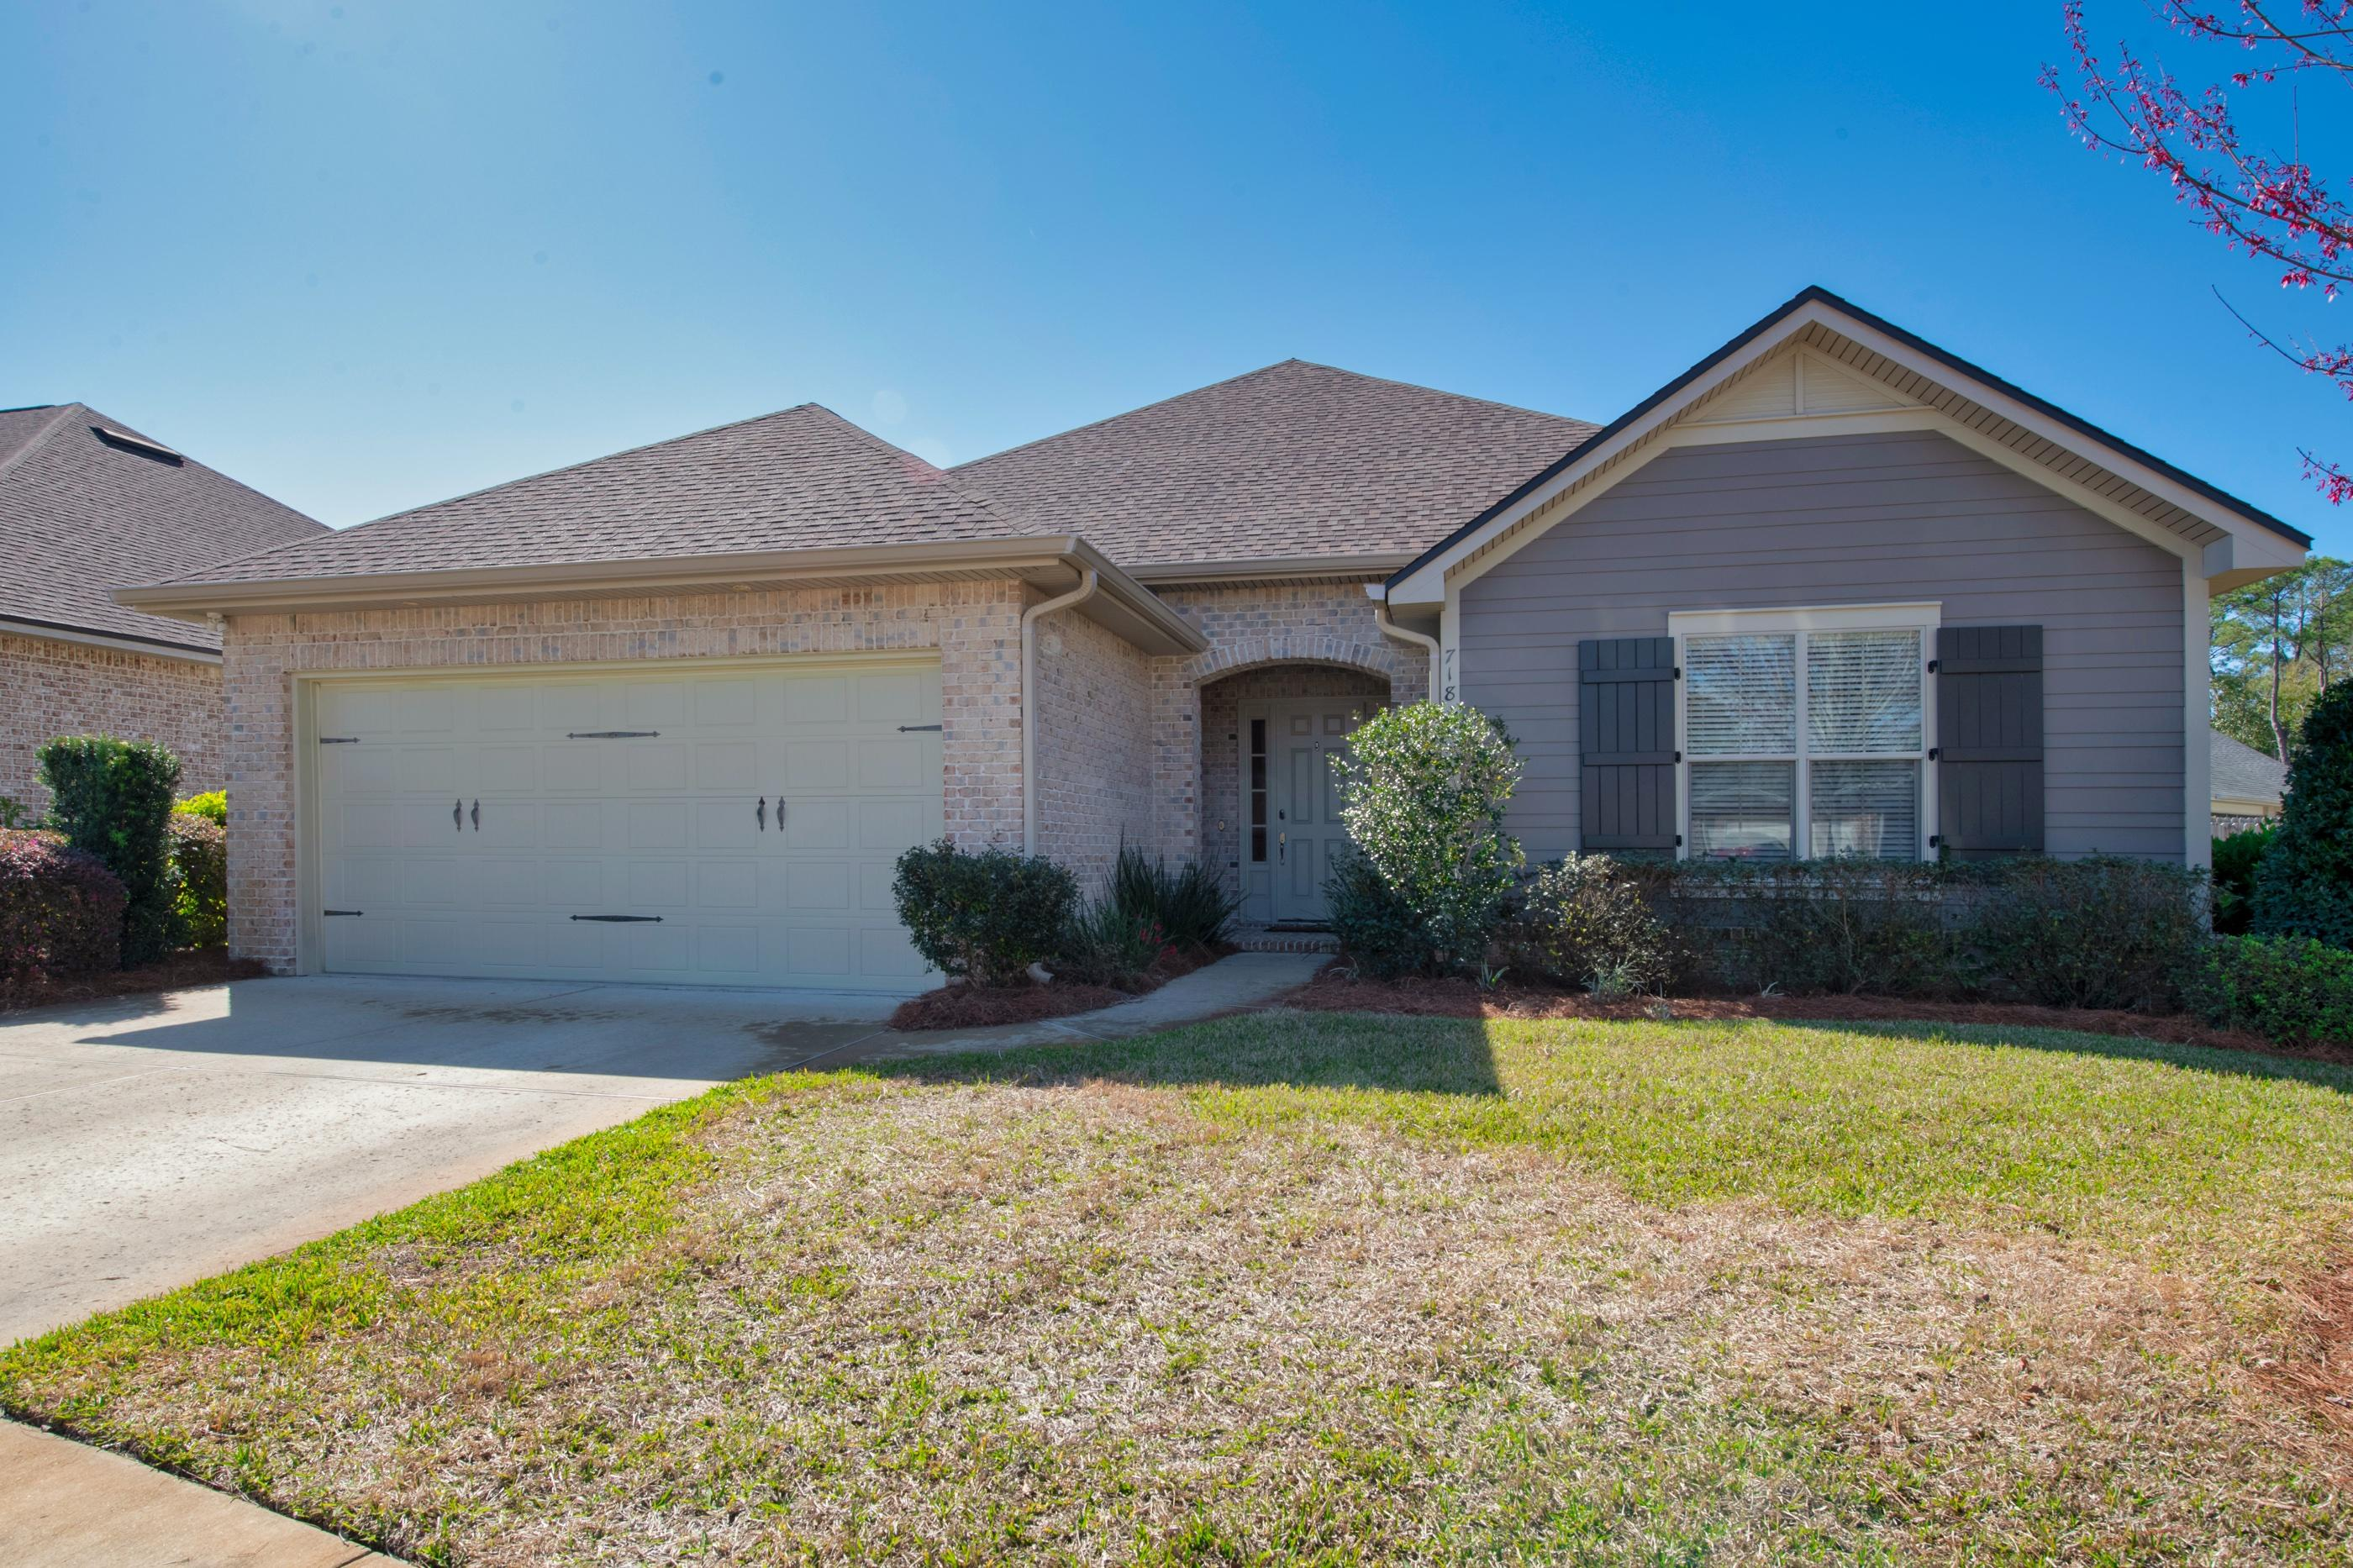 Photo of home for sale at 718 Woods, Niceville FL